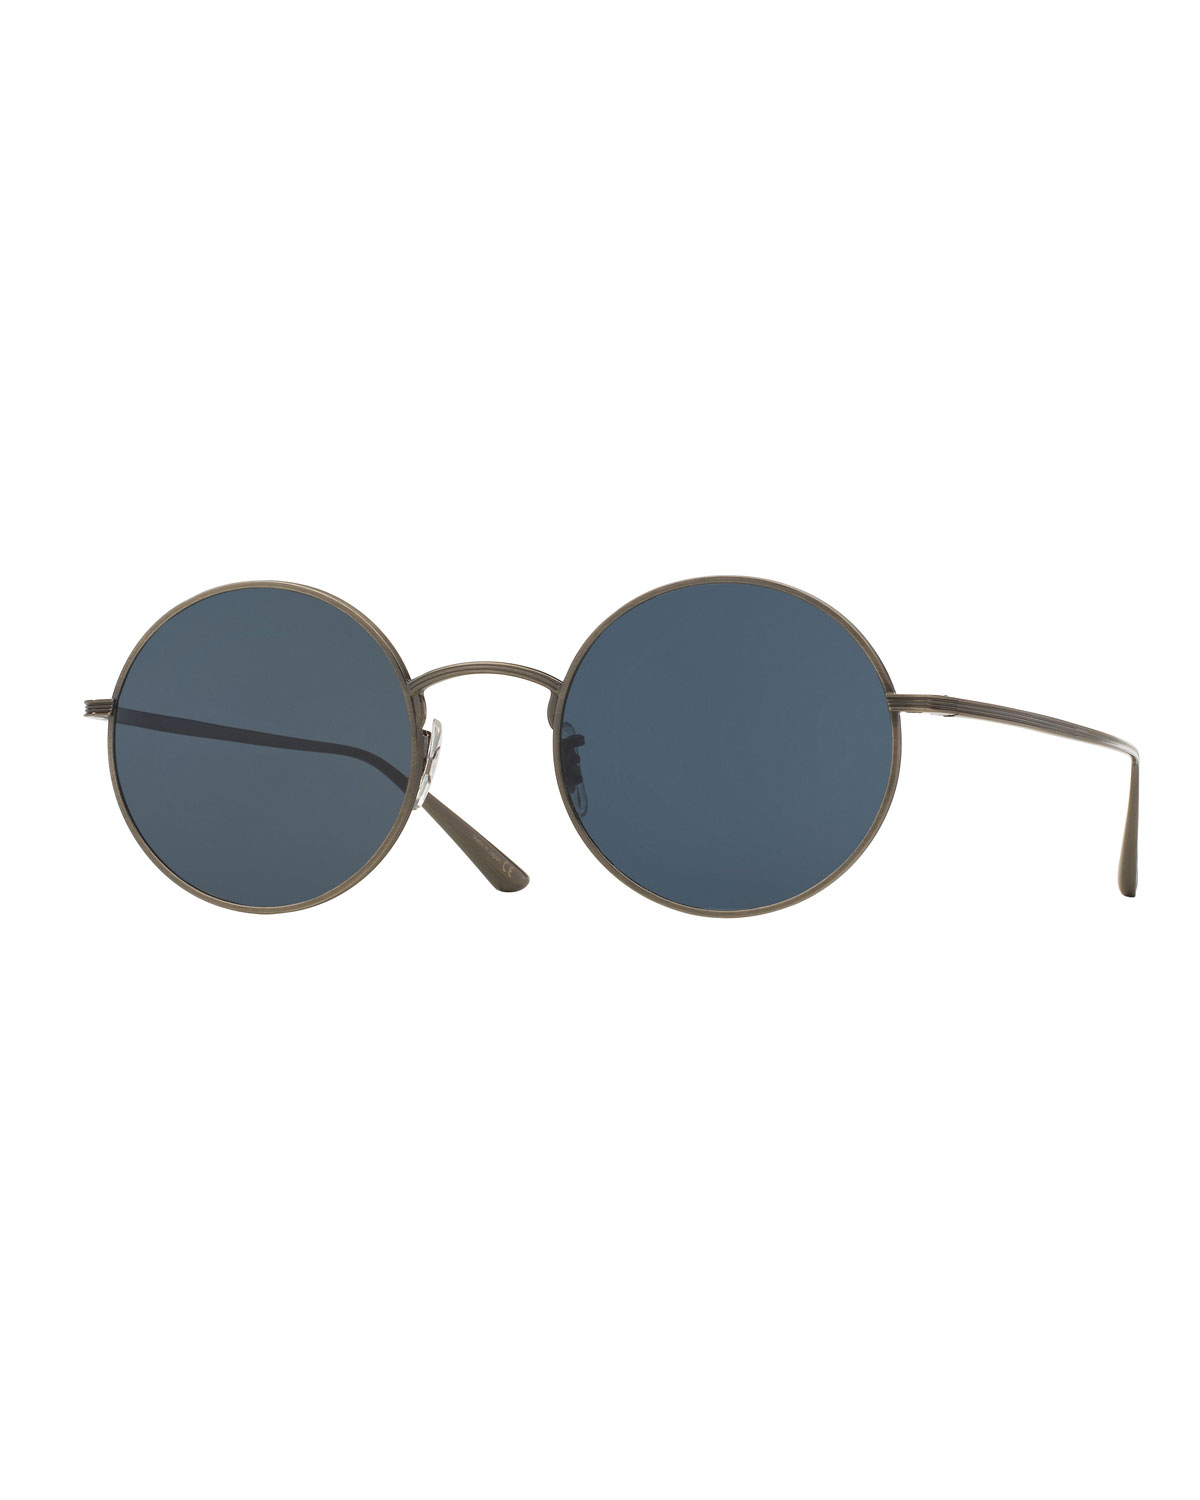 Oliver Peoples Sunglasses MEN'S AFTER MIDNIGHT ROUND METAL SUNGLASSES